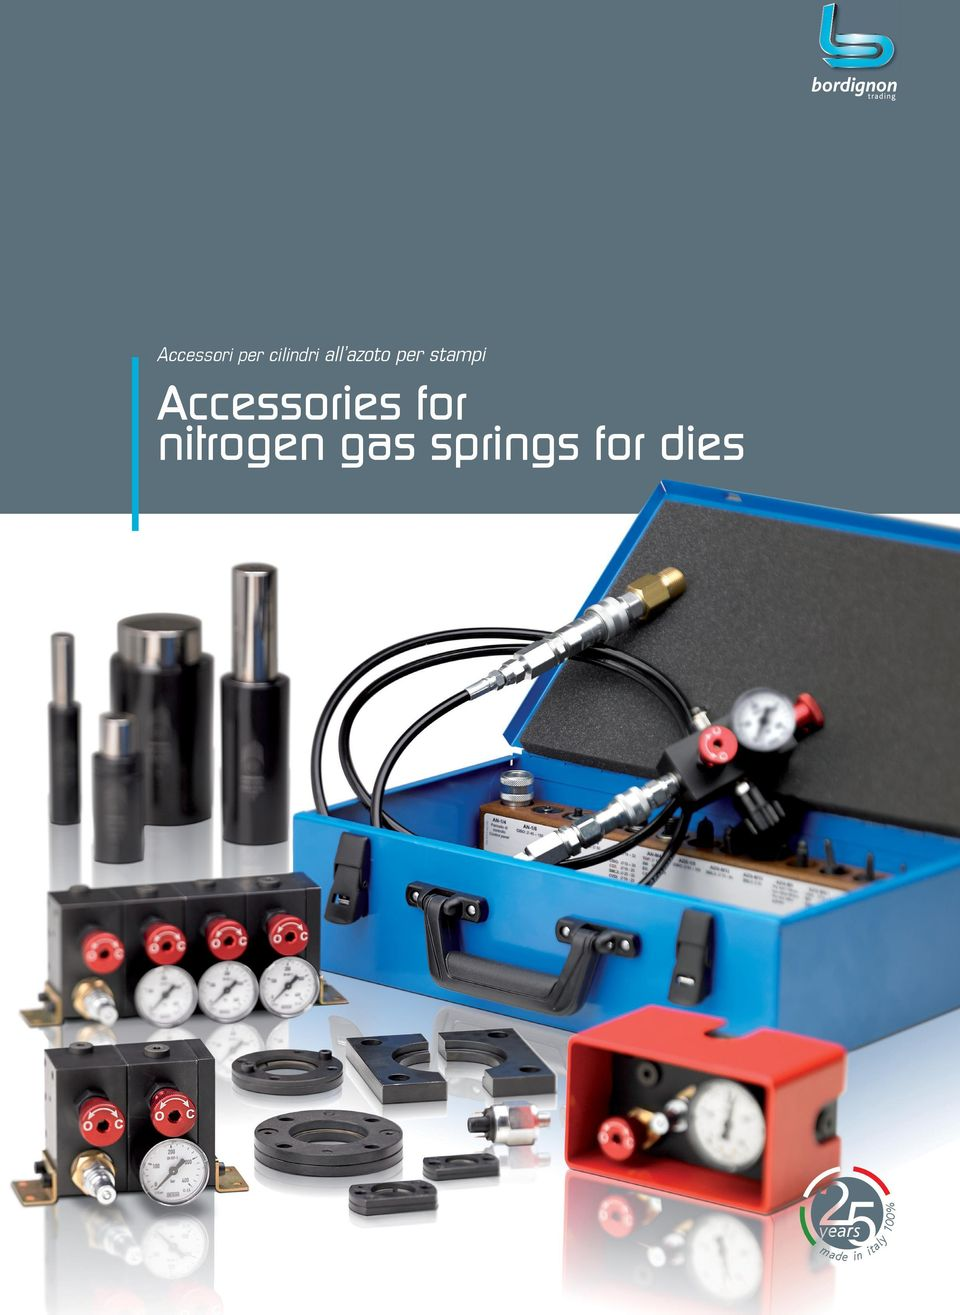 springs for dies a de in it 1 ccessories for nitrogen